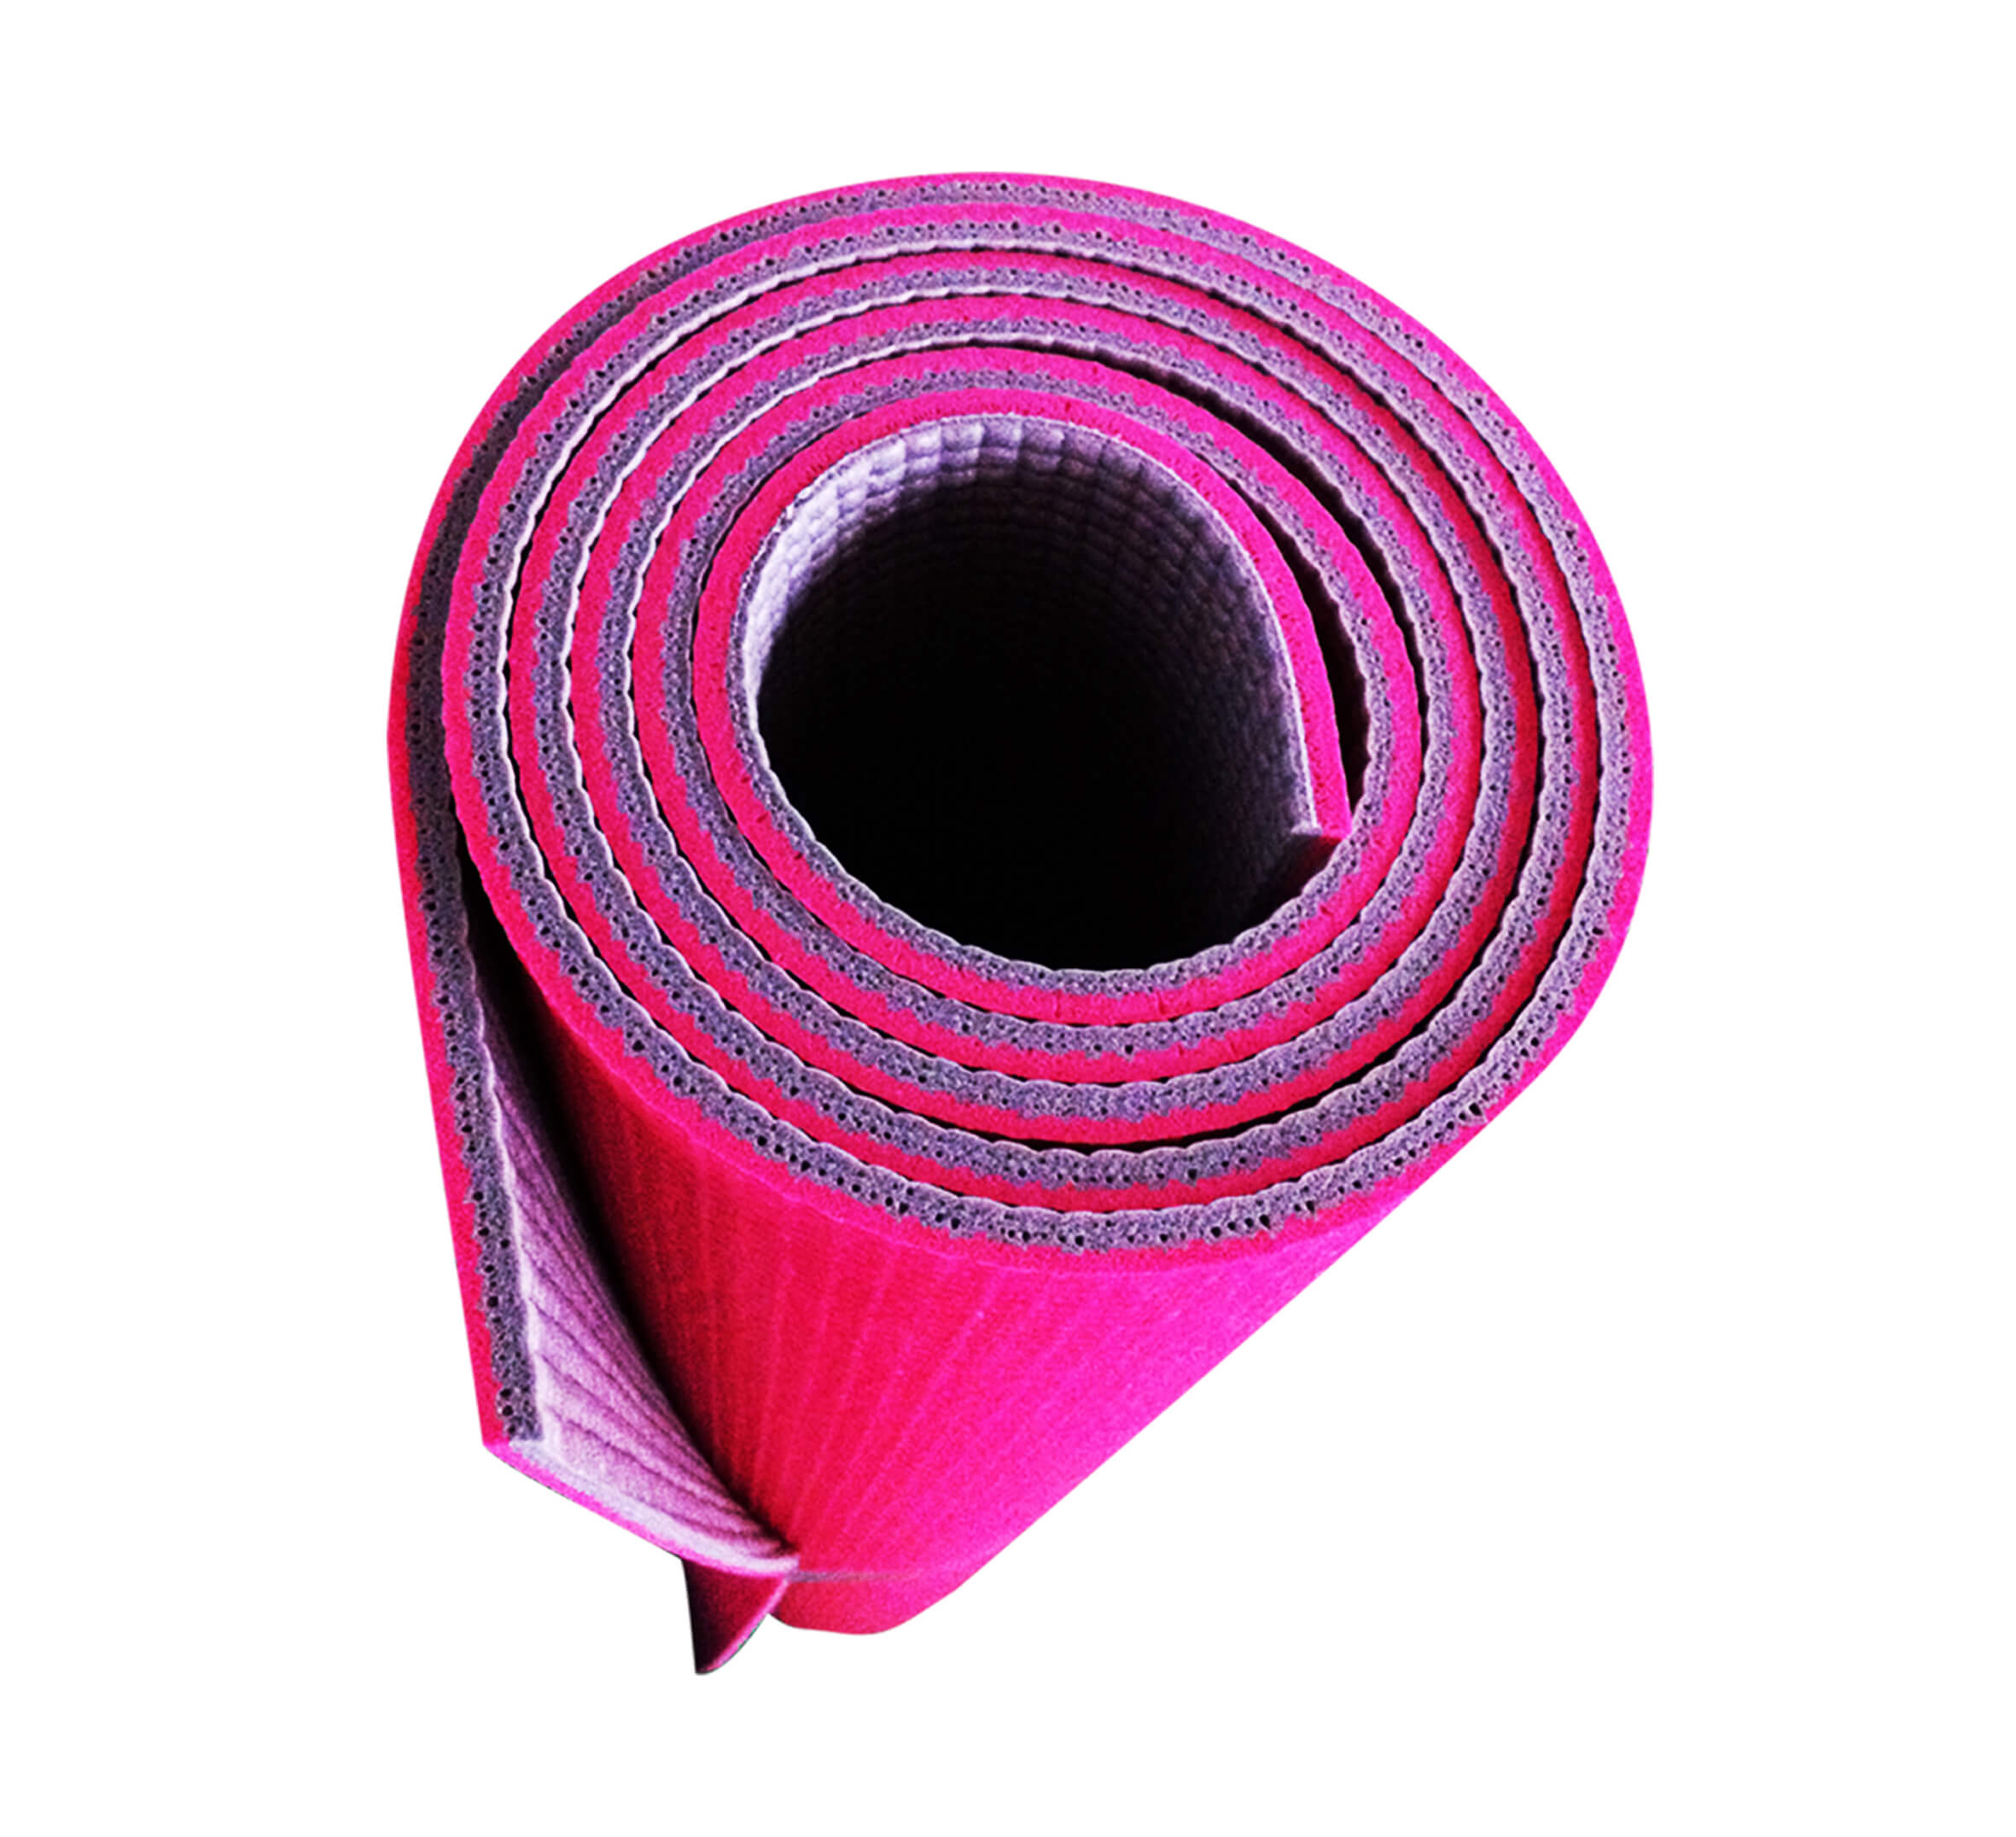 uniq mat colors products the yoga wear brands jade mats seek active towel